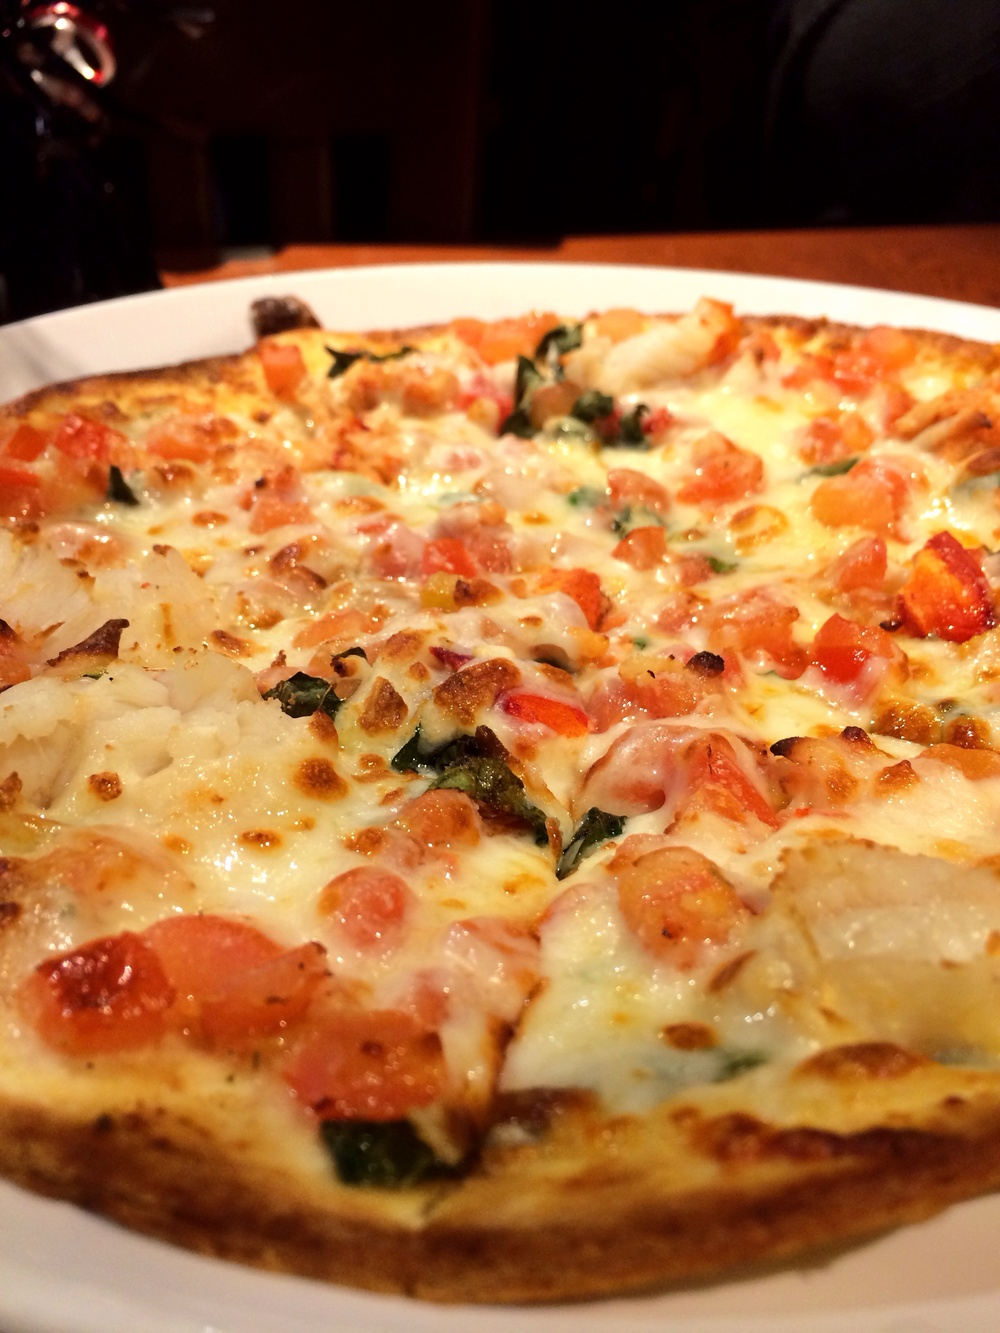 Lobster Pizza. A crisp thin-crust pizza topped with langostino lobster meat, melted mozzarella cheese, fresh tomatoes and sweet basil